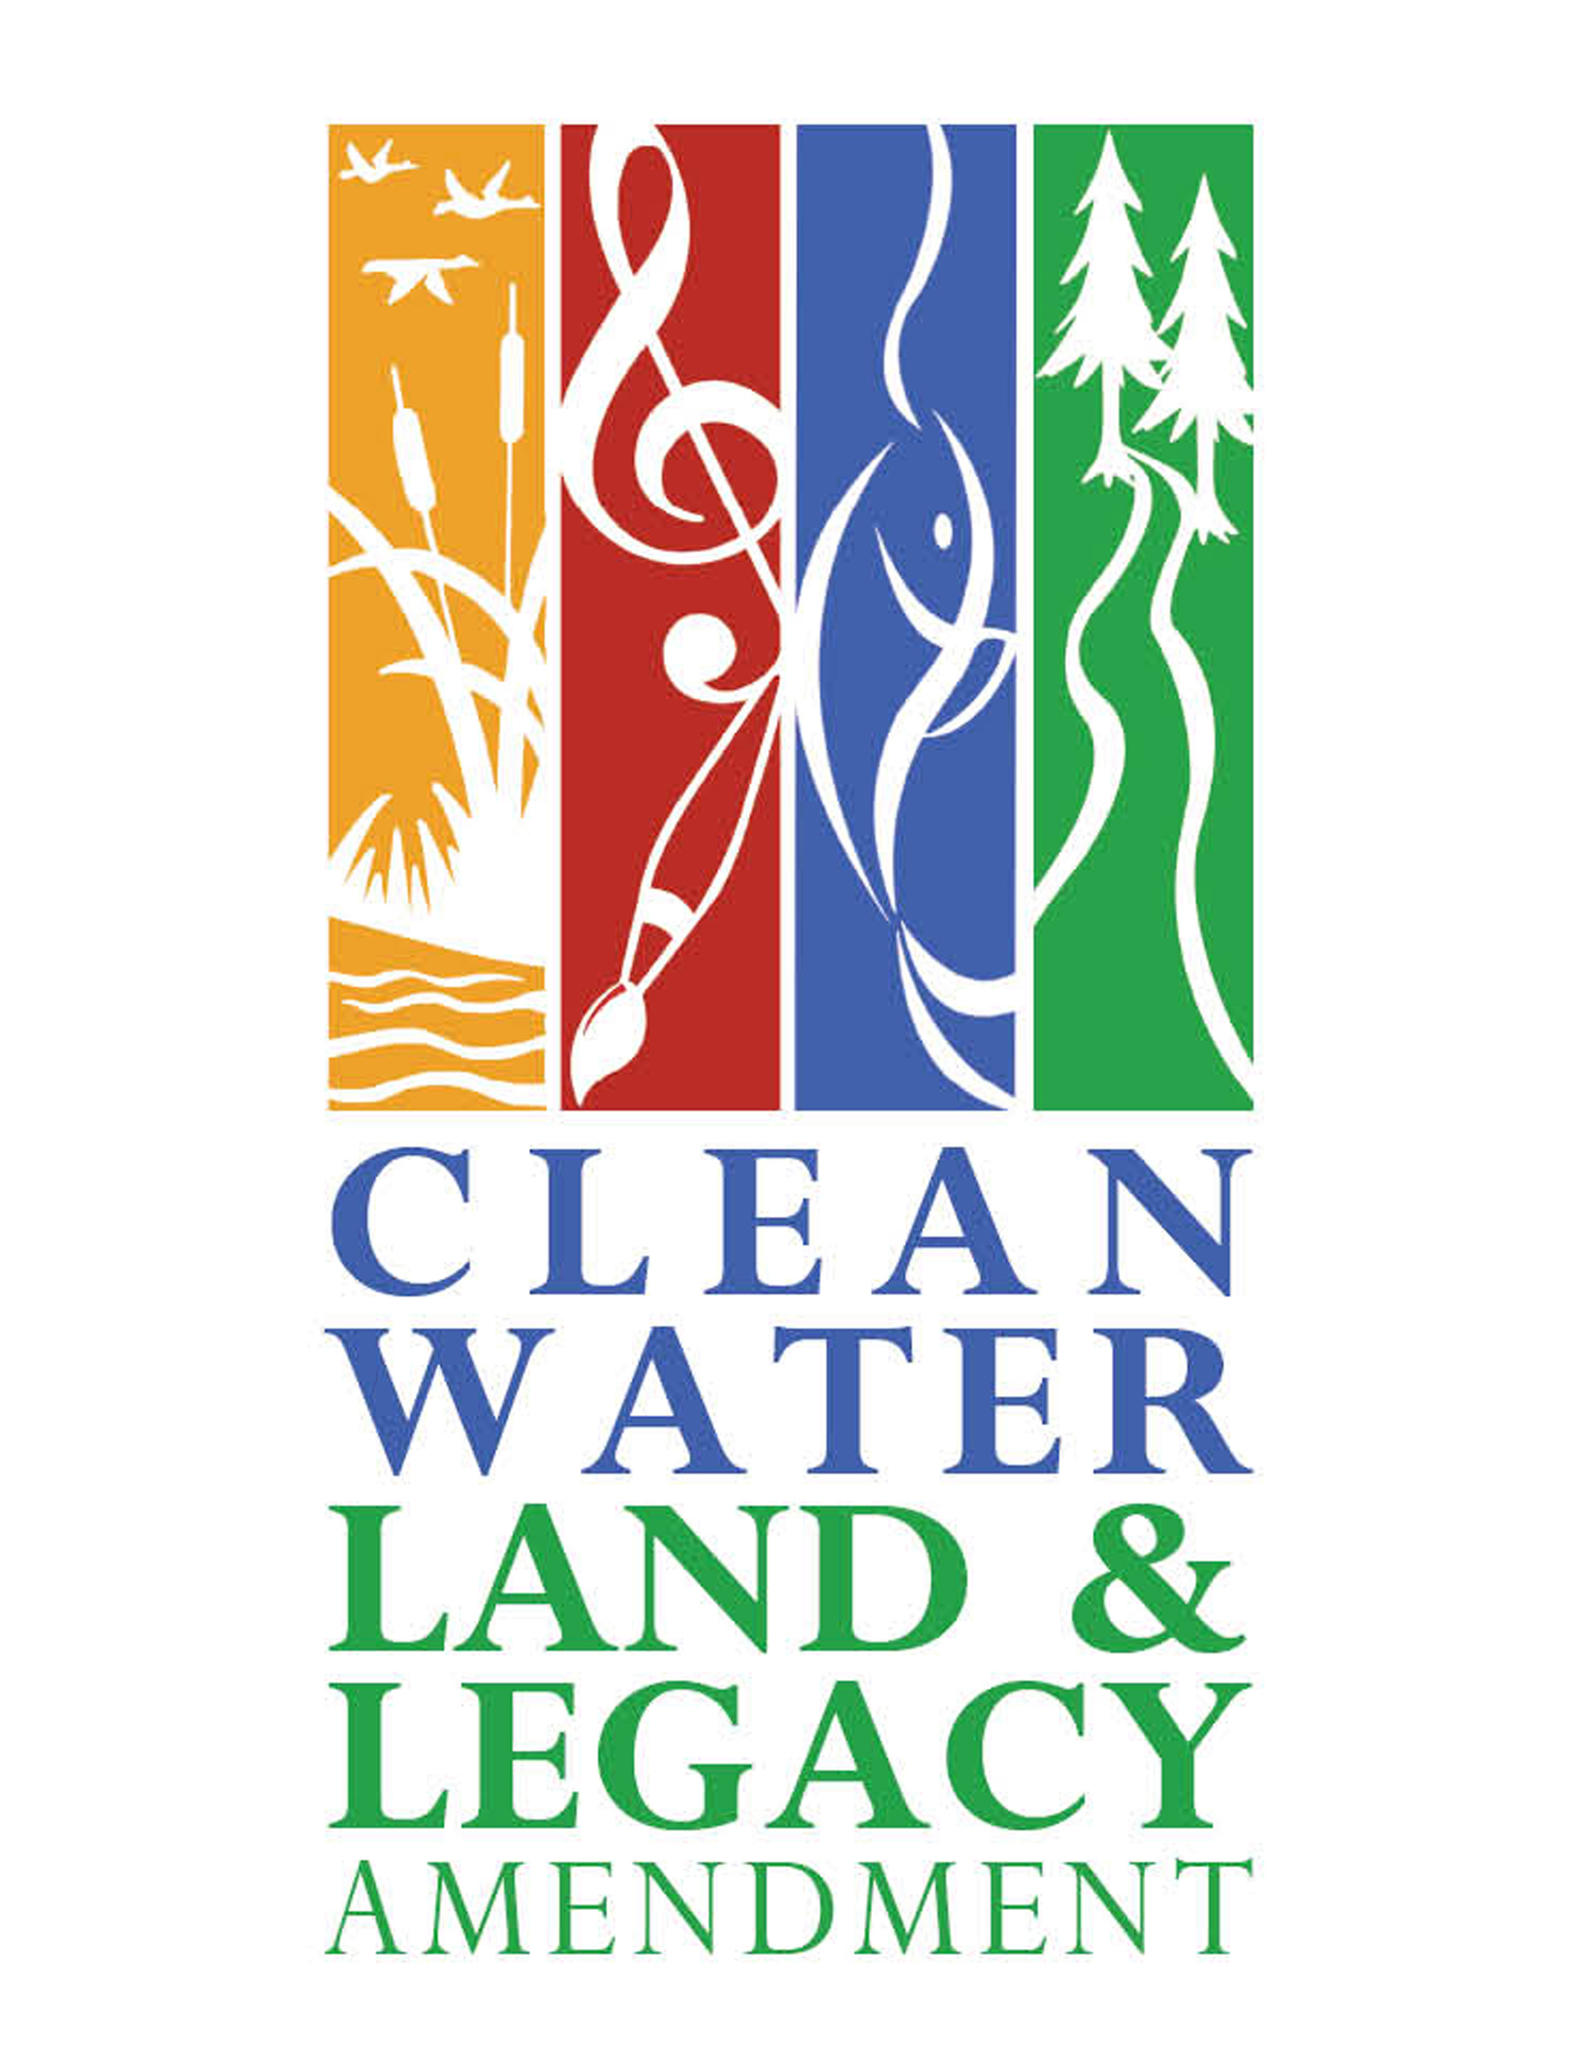 Funding For This Project Provided By The Clean Water Land And Legacy Amendment